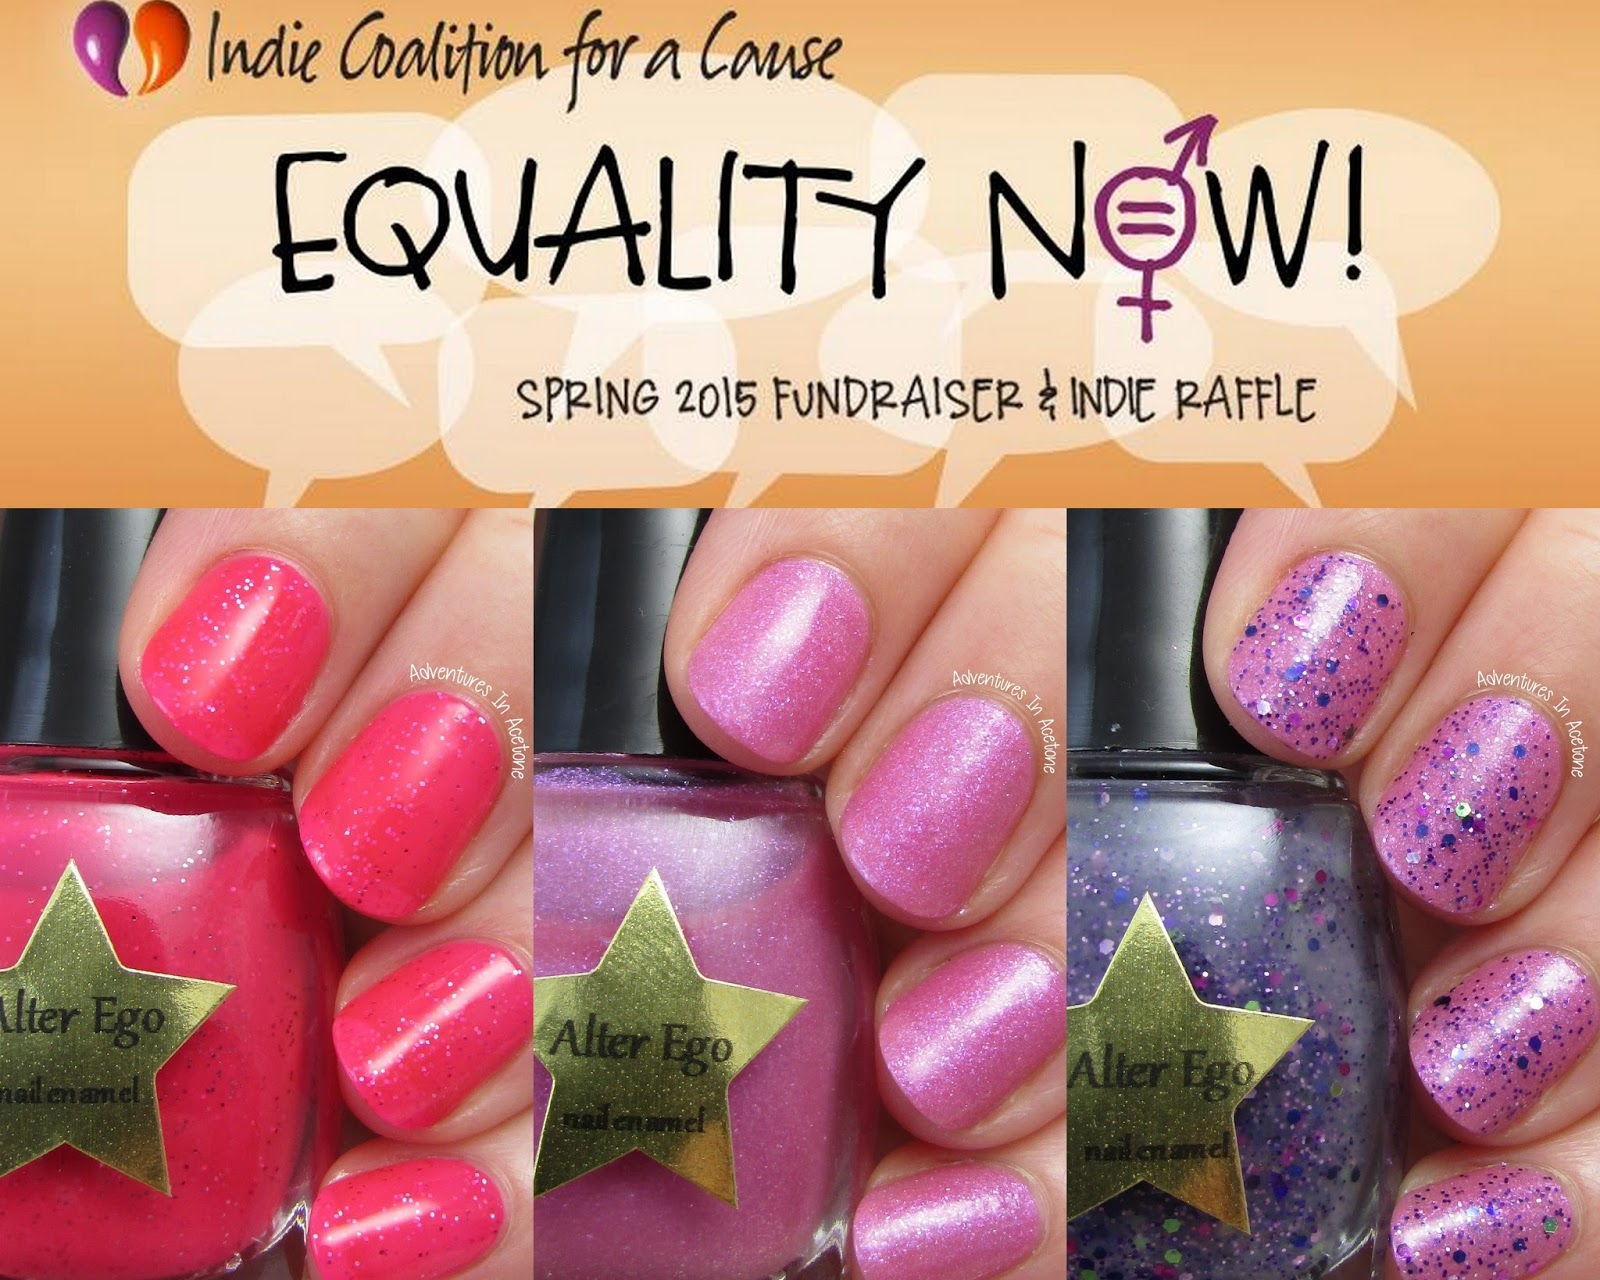 As I Ve Said Before In My Many Review Posts Of Alter Ego Nail Enamels Cynthia Uses A Unique Base And Therefore All Her Polishes Dry To Matte Finish